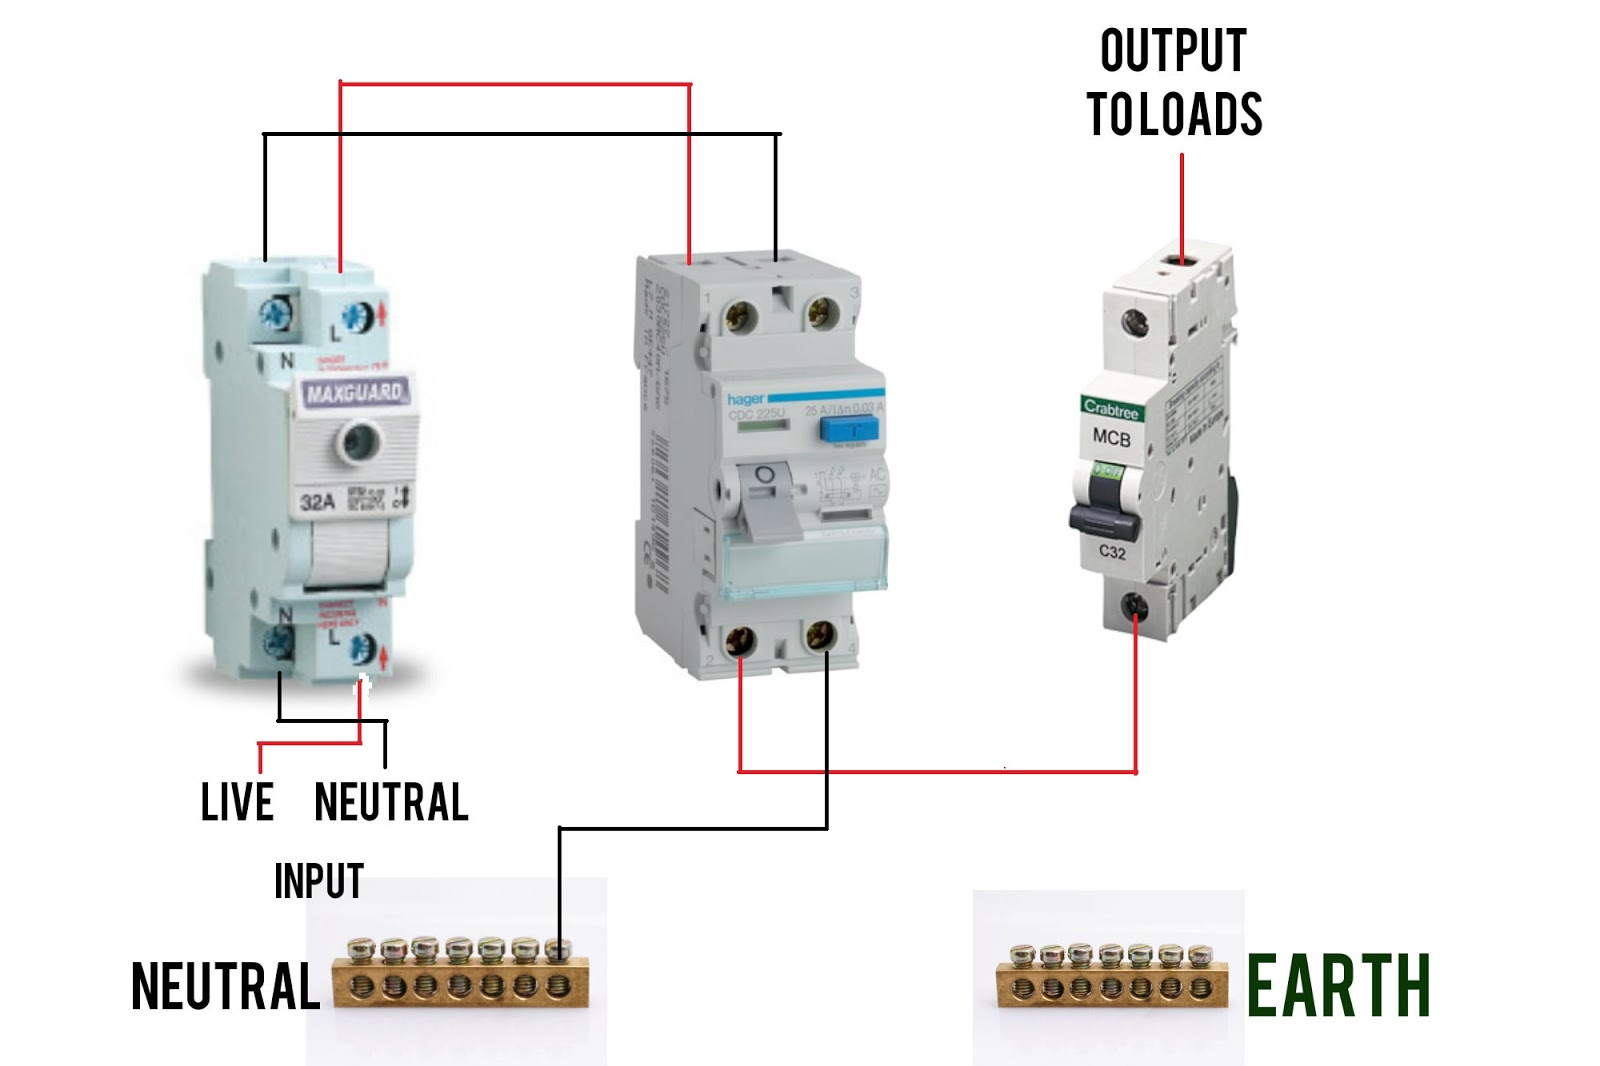 mcb board wiring diagram dryer the world through electricity electrical distribution